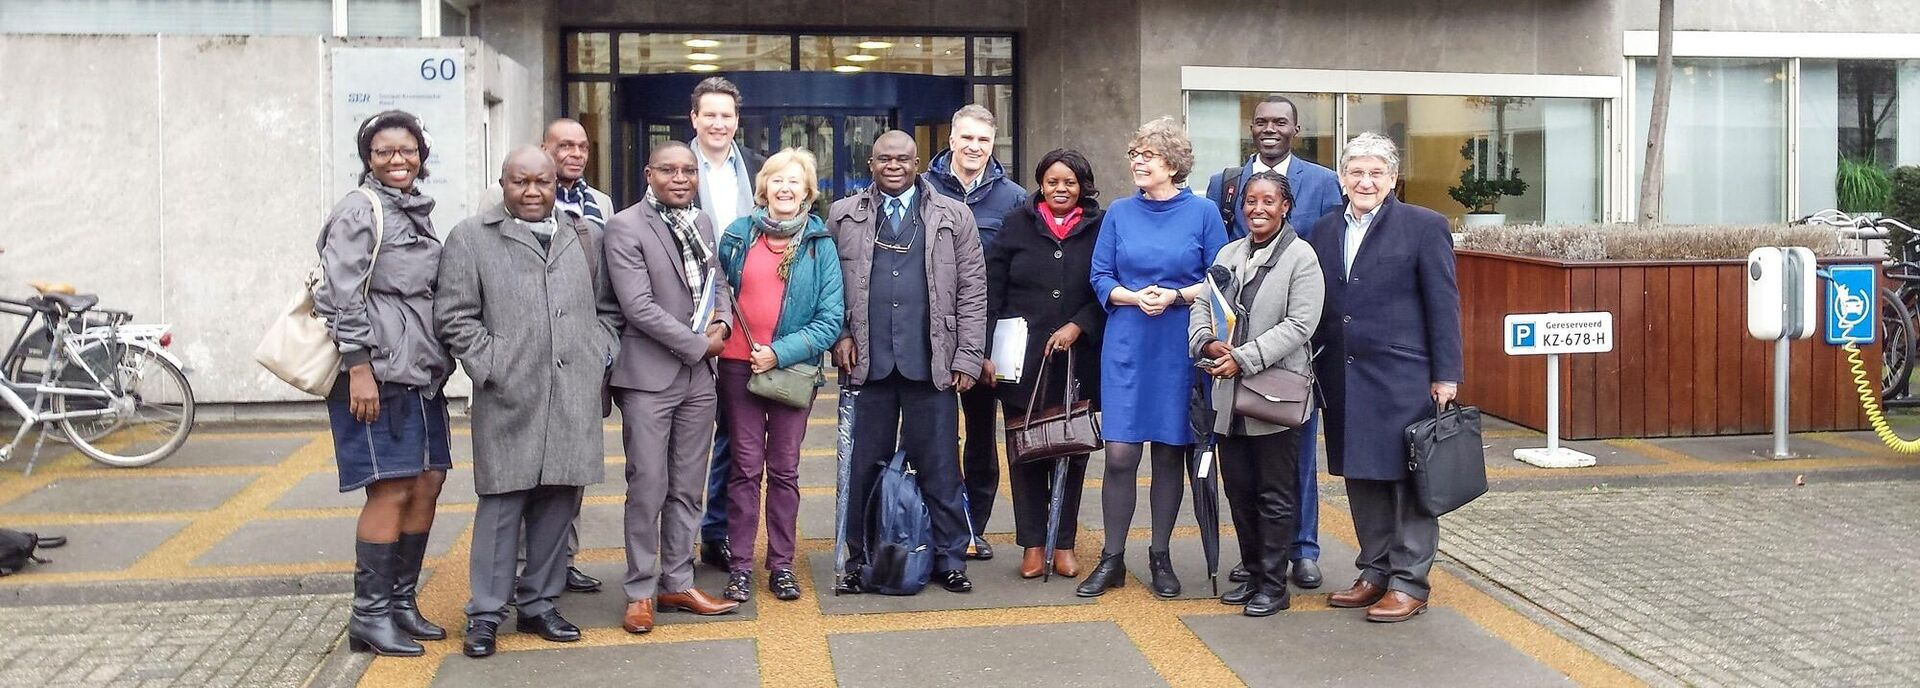 WORKING VISIT OF EAST AFRICAN EMPLOYERS' ORGANISATIONS TO THE NETHERLANDS